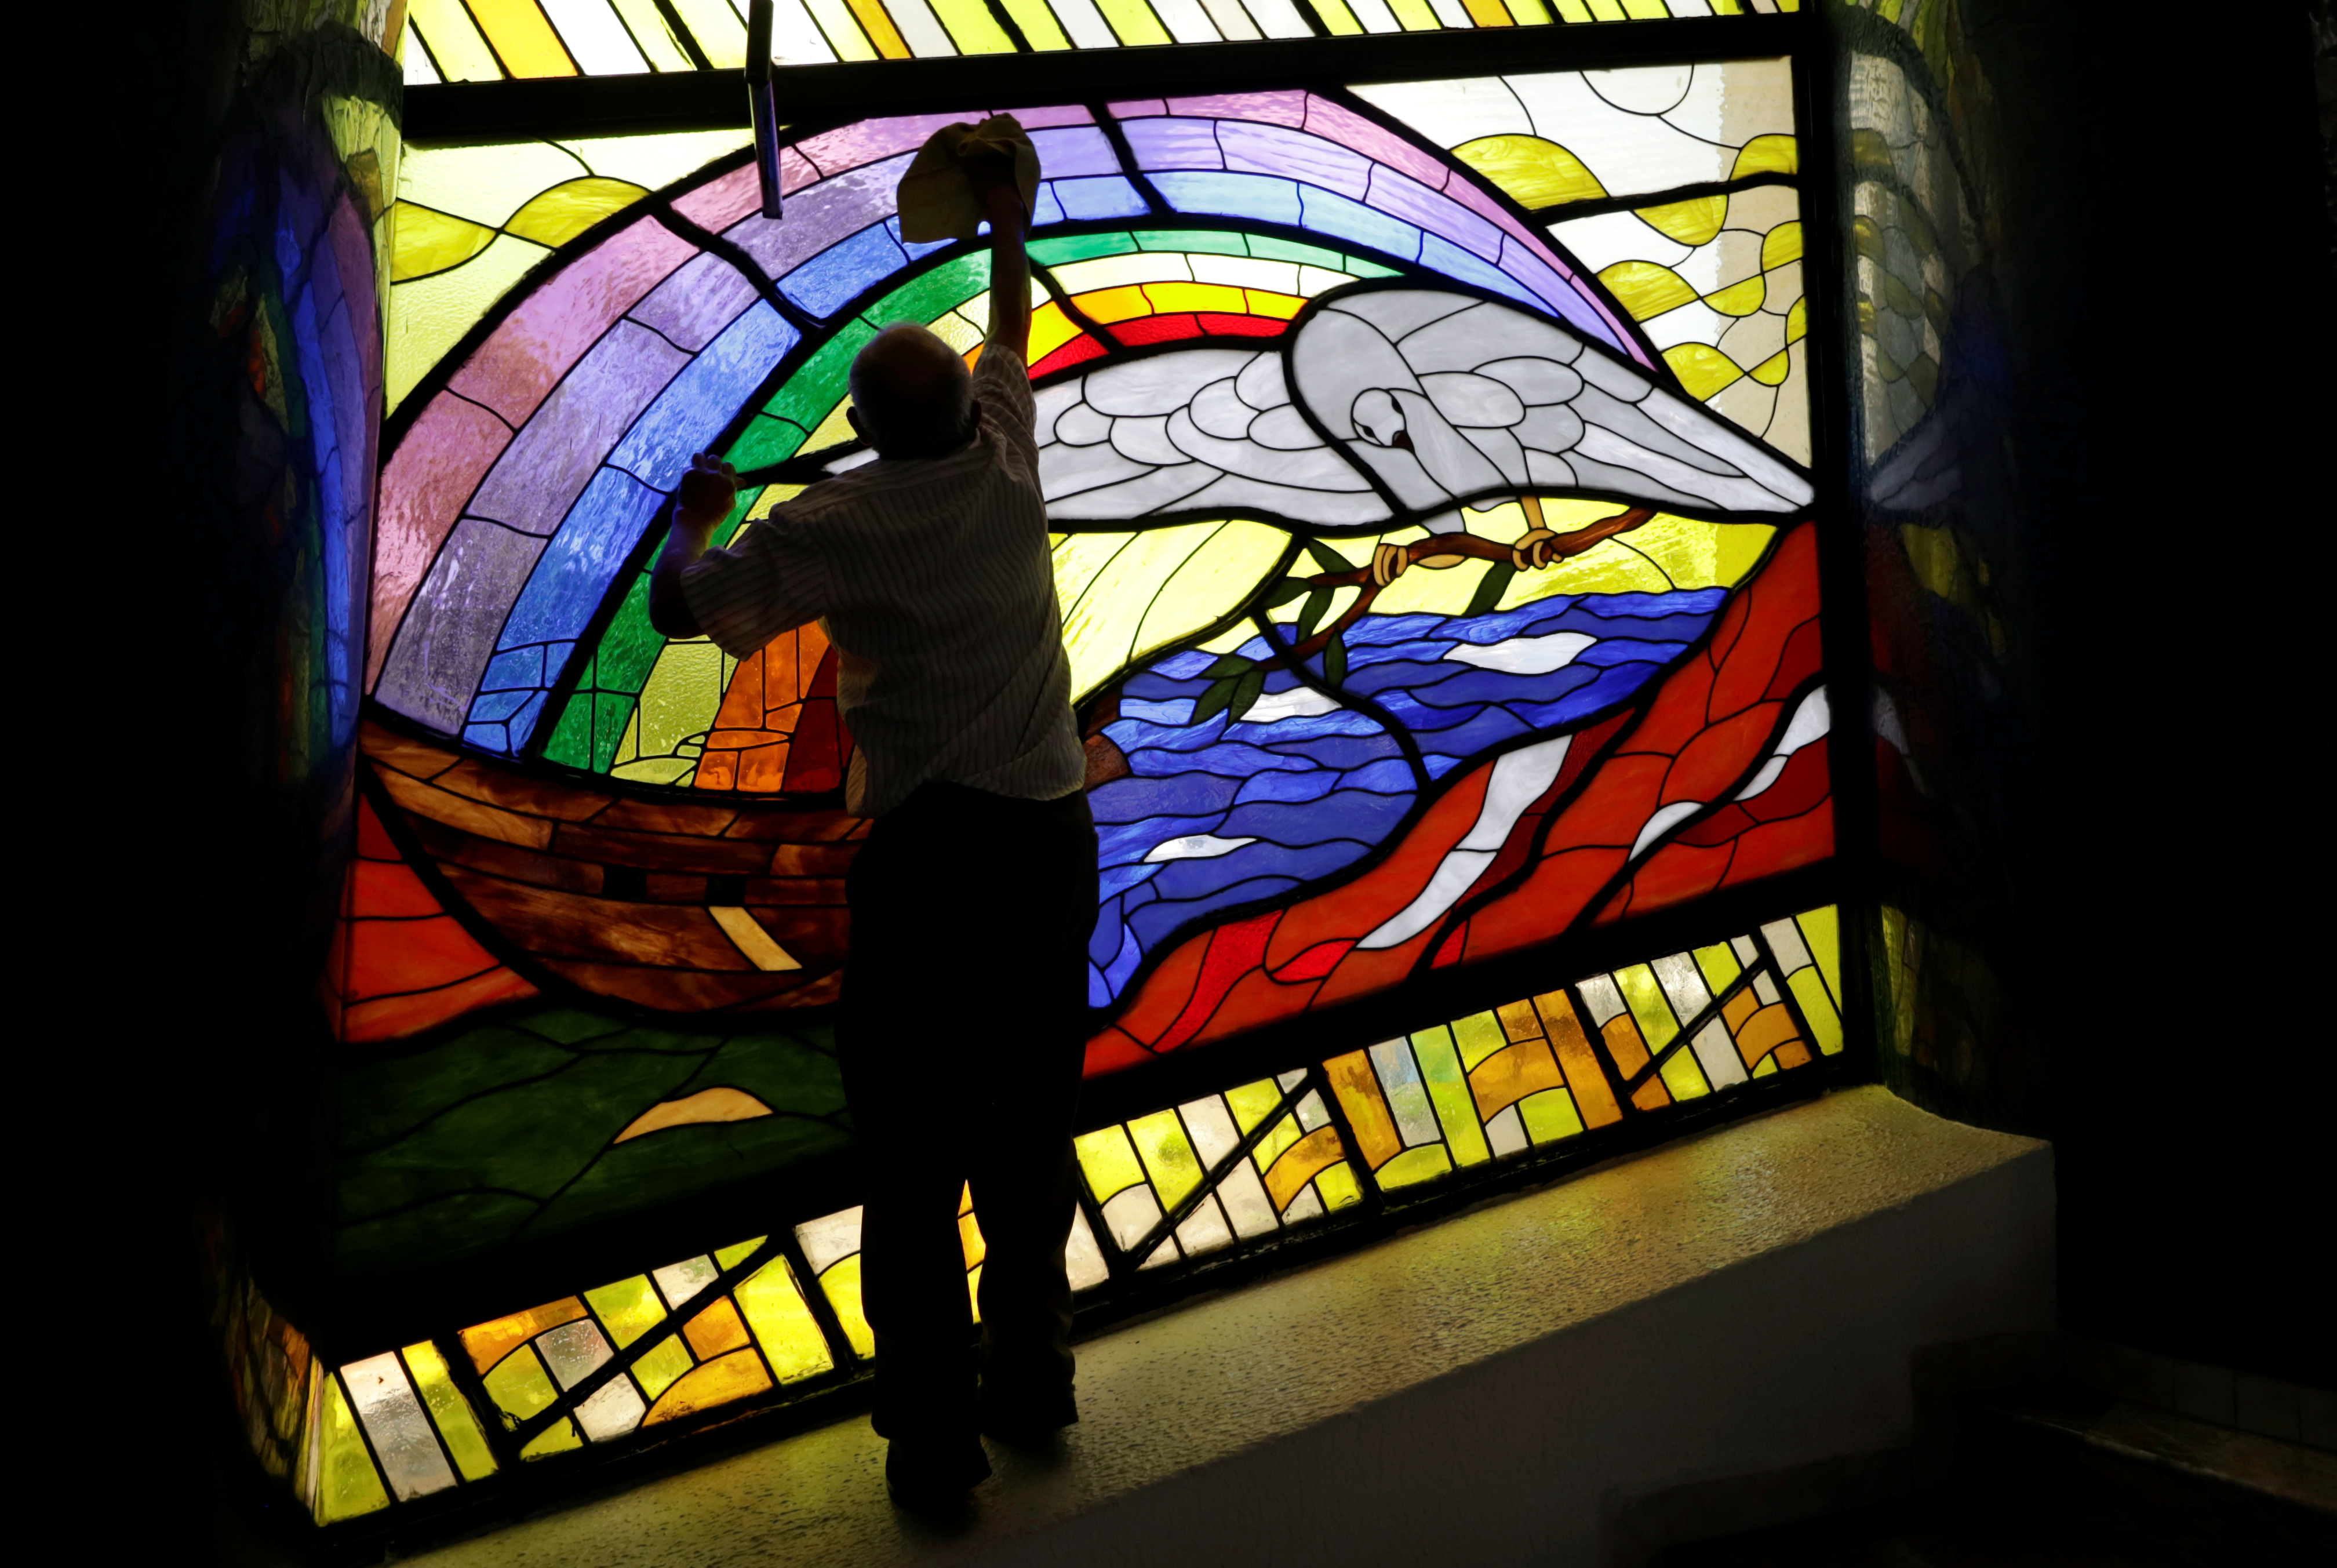 A man cleans a stained glass inside a La Luz del Mundo (The Light of the World) church after its leader Naason Joaquin Garcia was arrested in California, in Mexico City, Mexico June 5, 2019. REUTERS/Luis Cortes